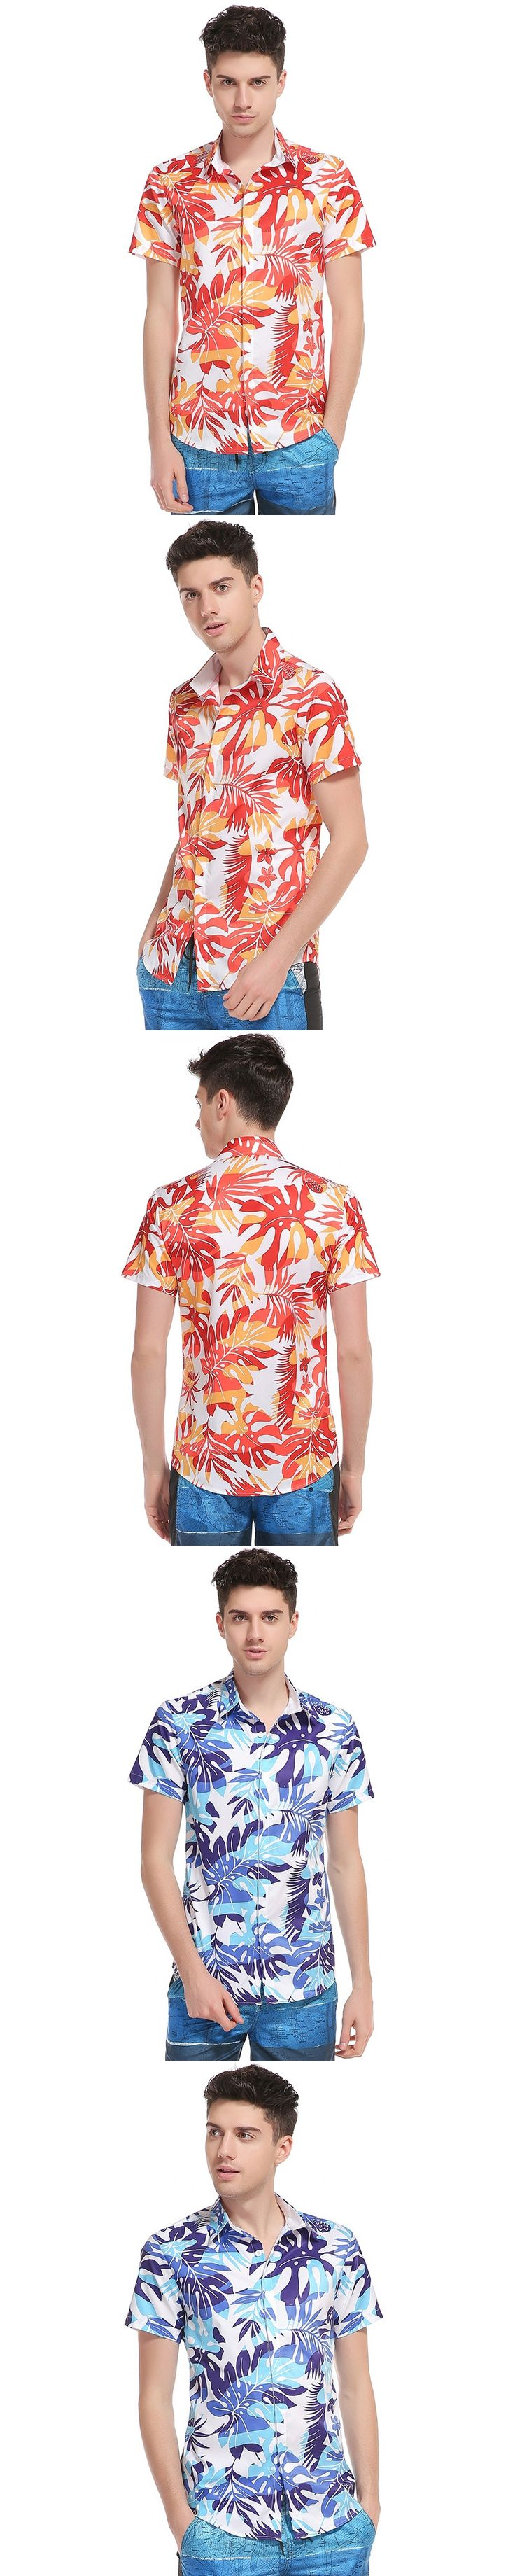 New fashion foreign trade new men's 3D printing palm tree leisure short sleeved Hawaii beach shirt high quality